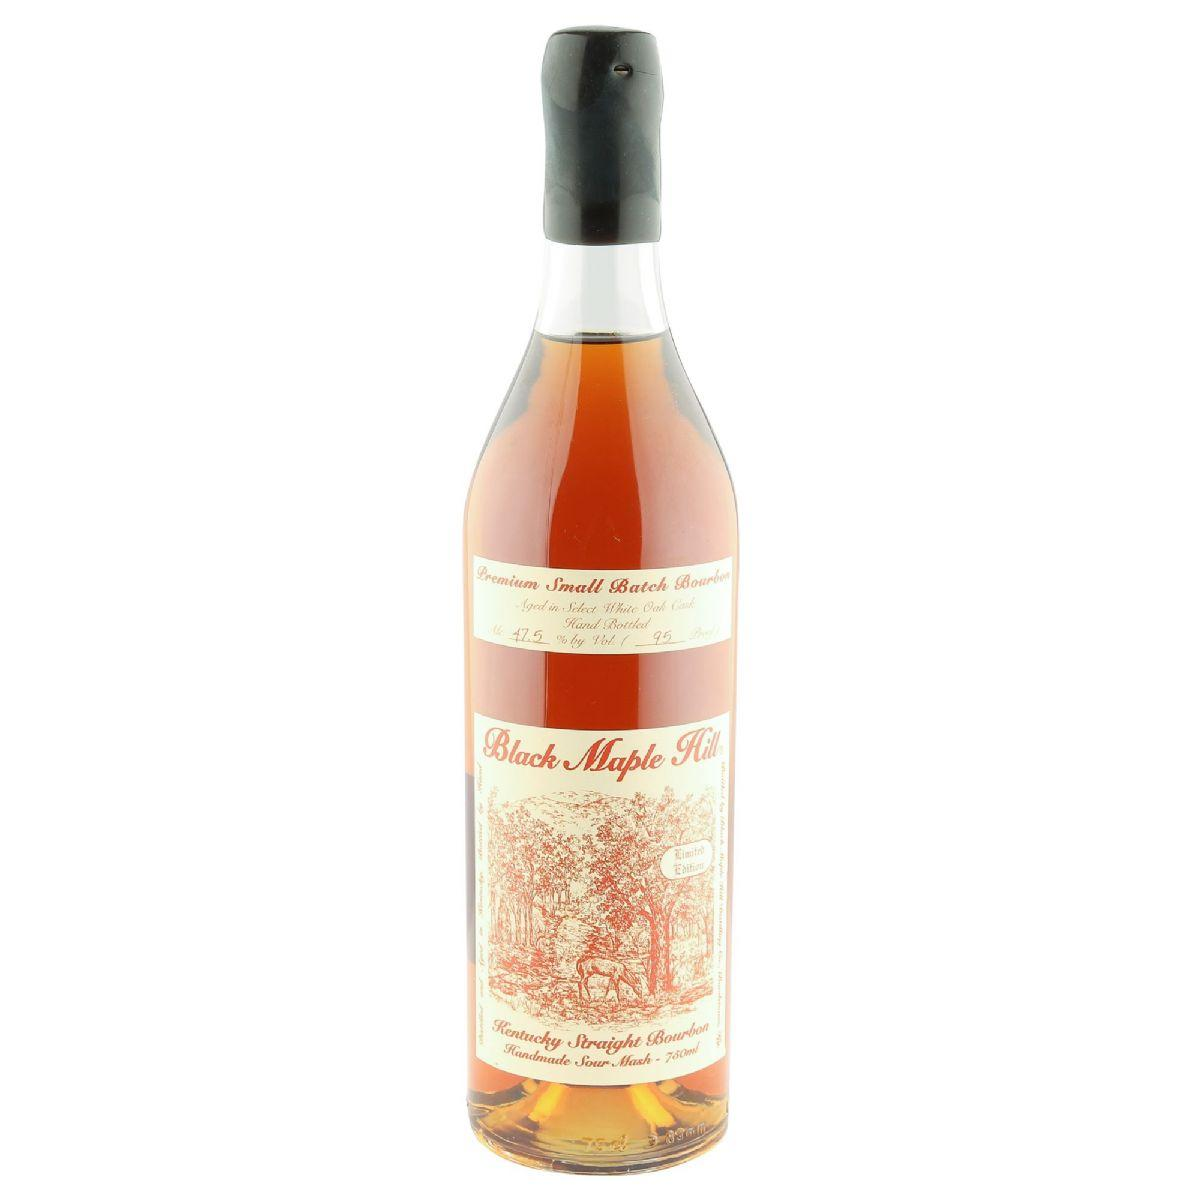 Black Maple Hill 16-Year-Old Premium Small Batch Kentucky Straight Bourbon